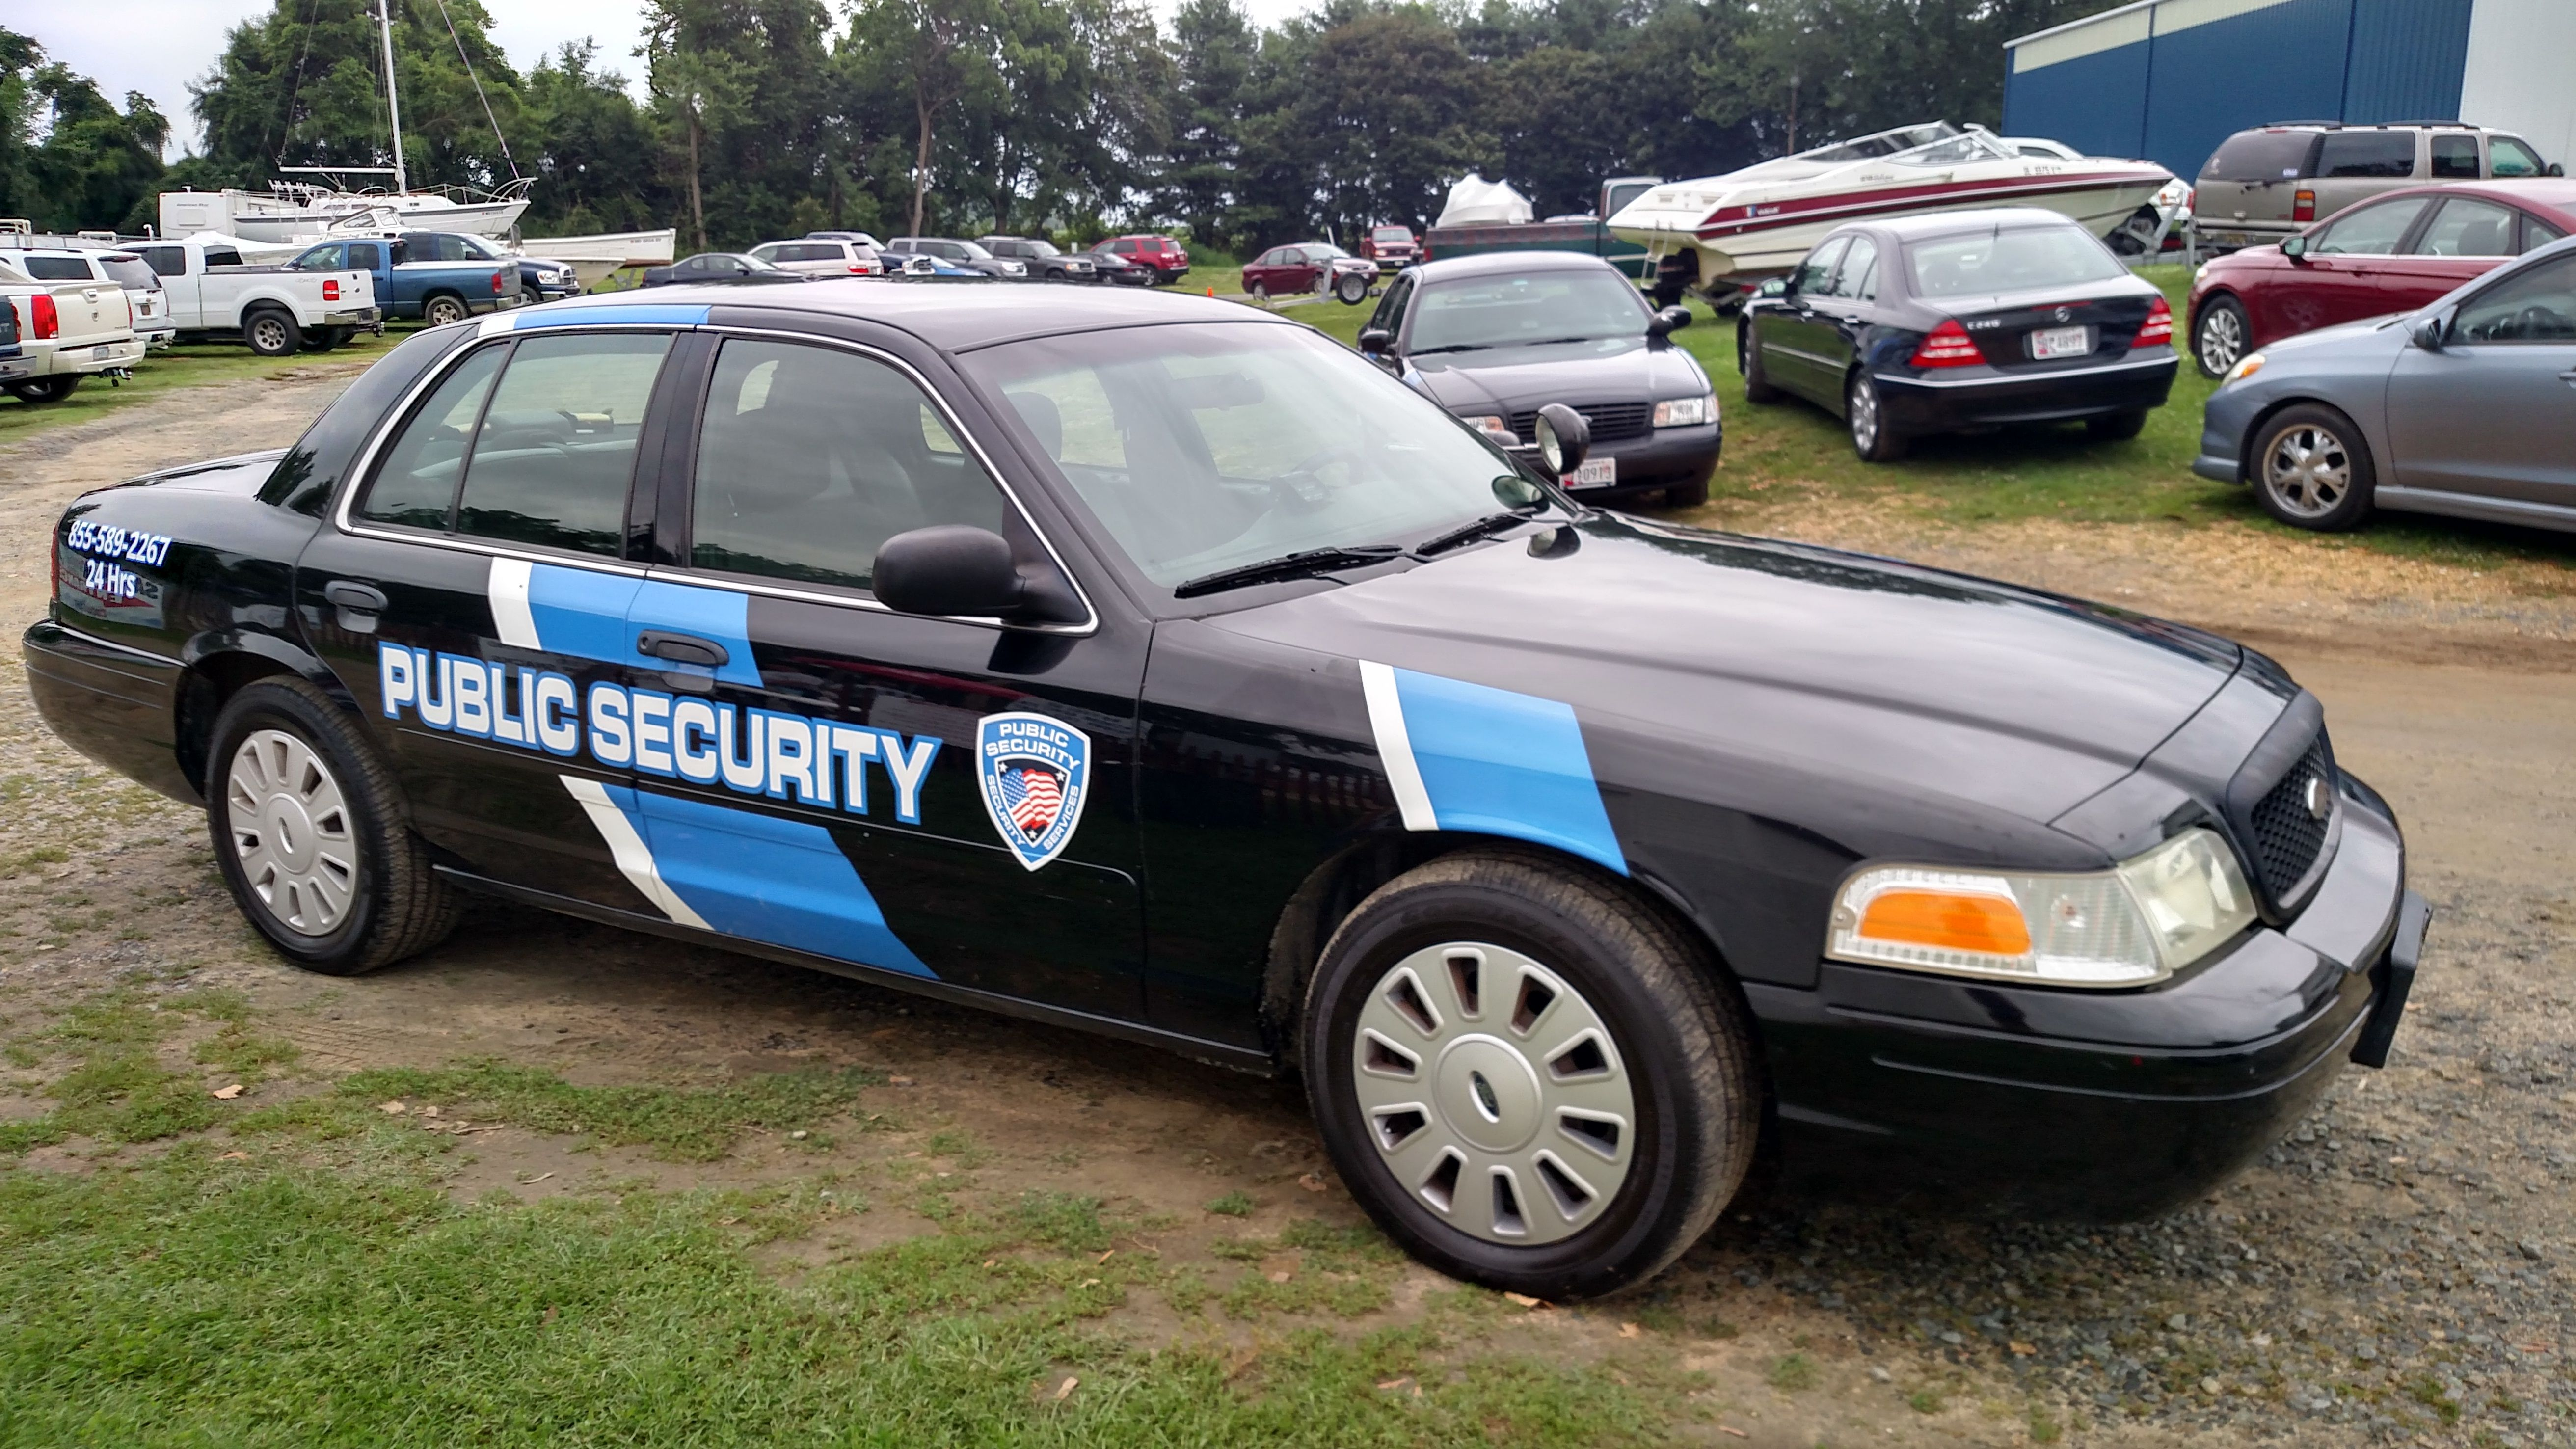 Private Security Company Conducts Parking Enforcement And